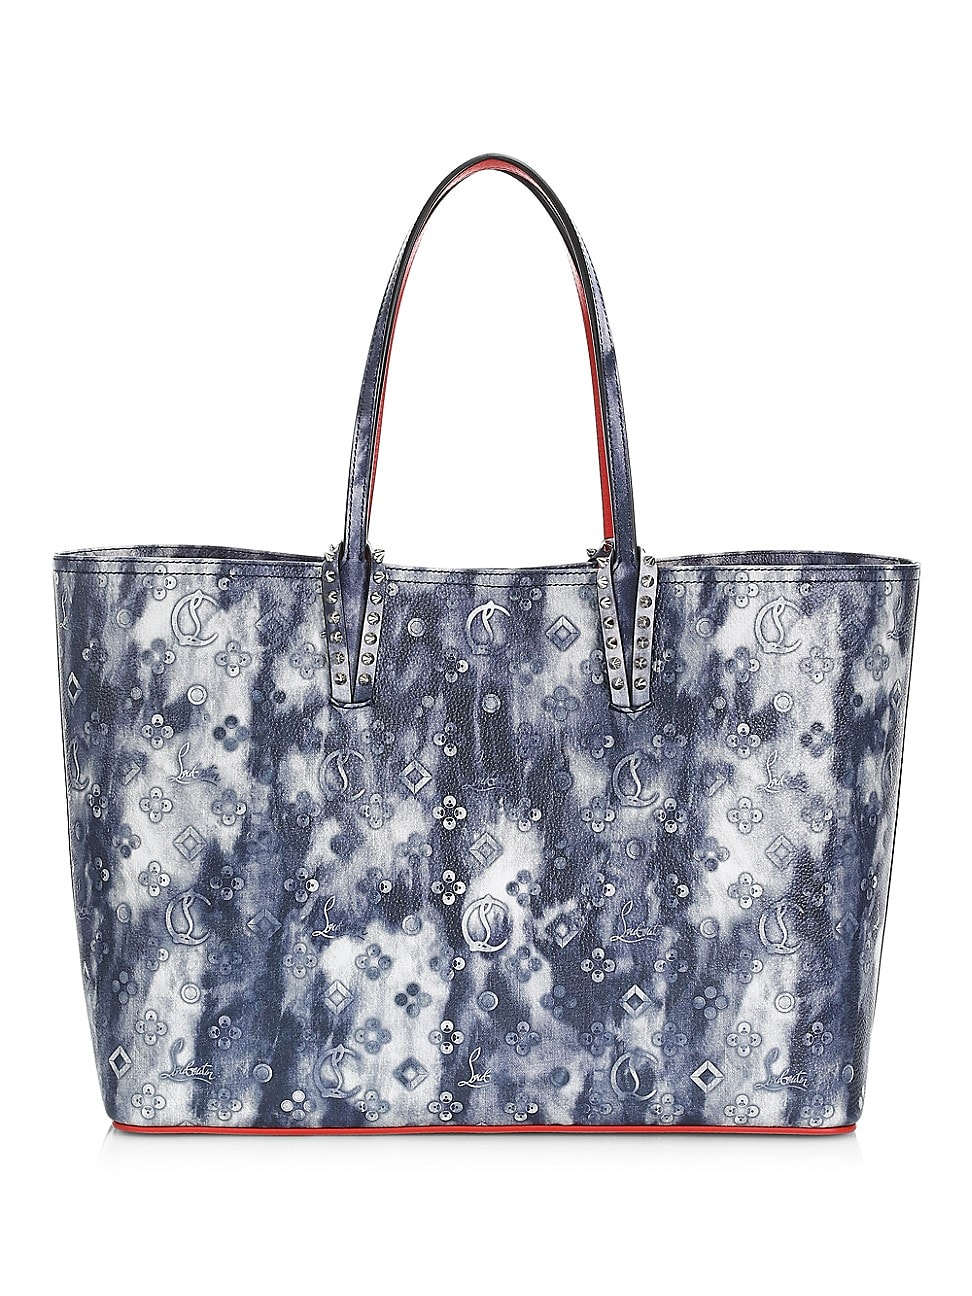 Christian Louboutin Leathers WOMEN'S CABATA TIE-DYE LEATHER TOTE